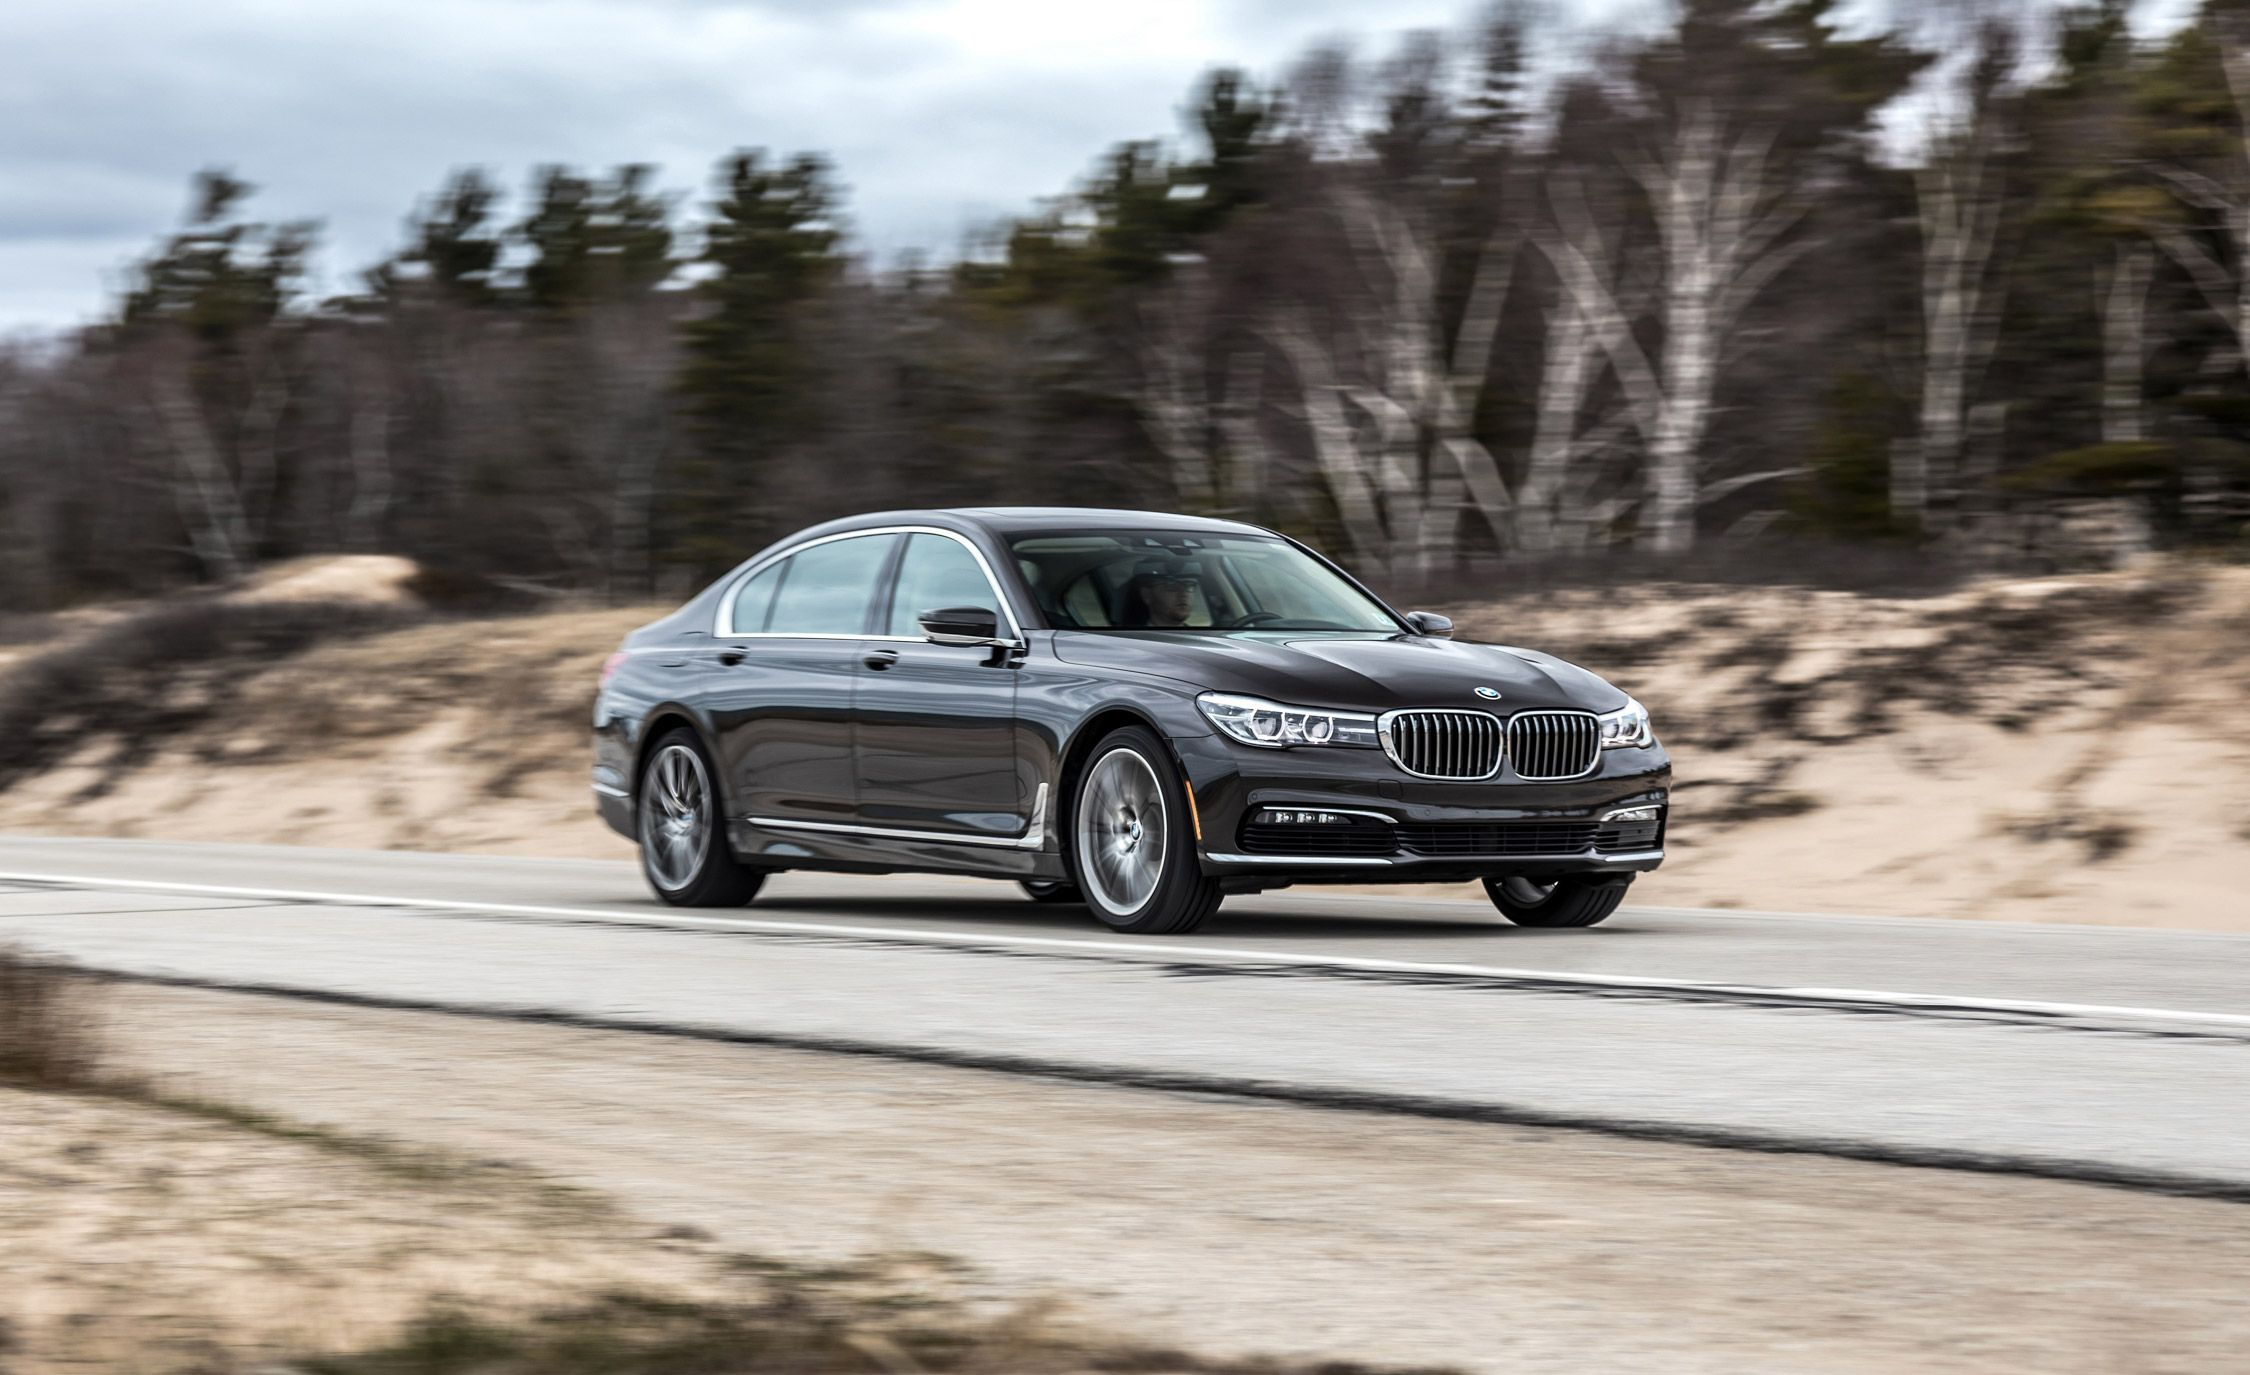 hight resolution of 2016 bmw 740i long term test review car and driver wiring diagram bmw f01 further return to top of page also bmw wheels